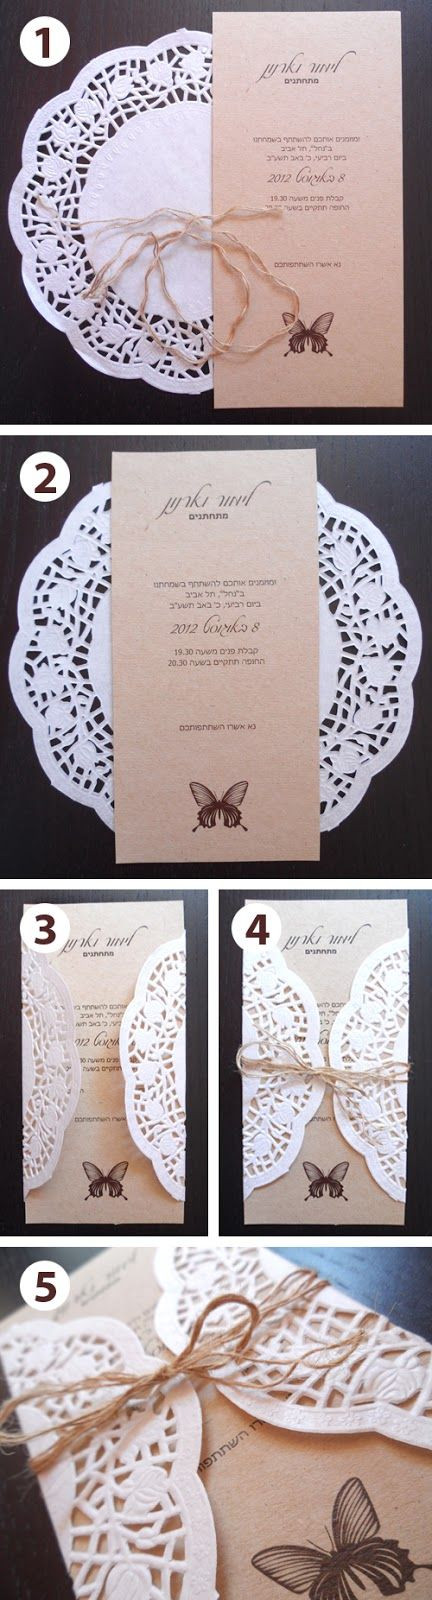 DIY Wedding Ideas For Your Wedding